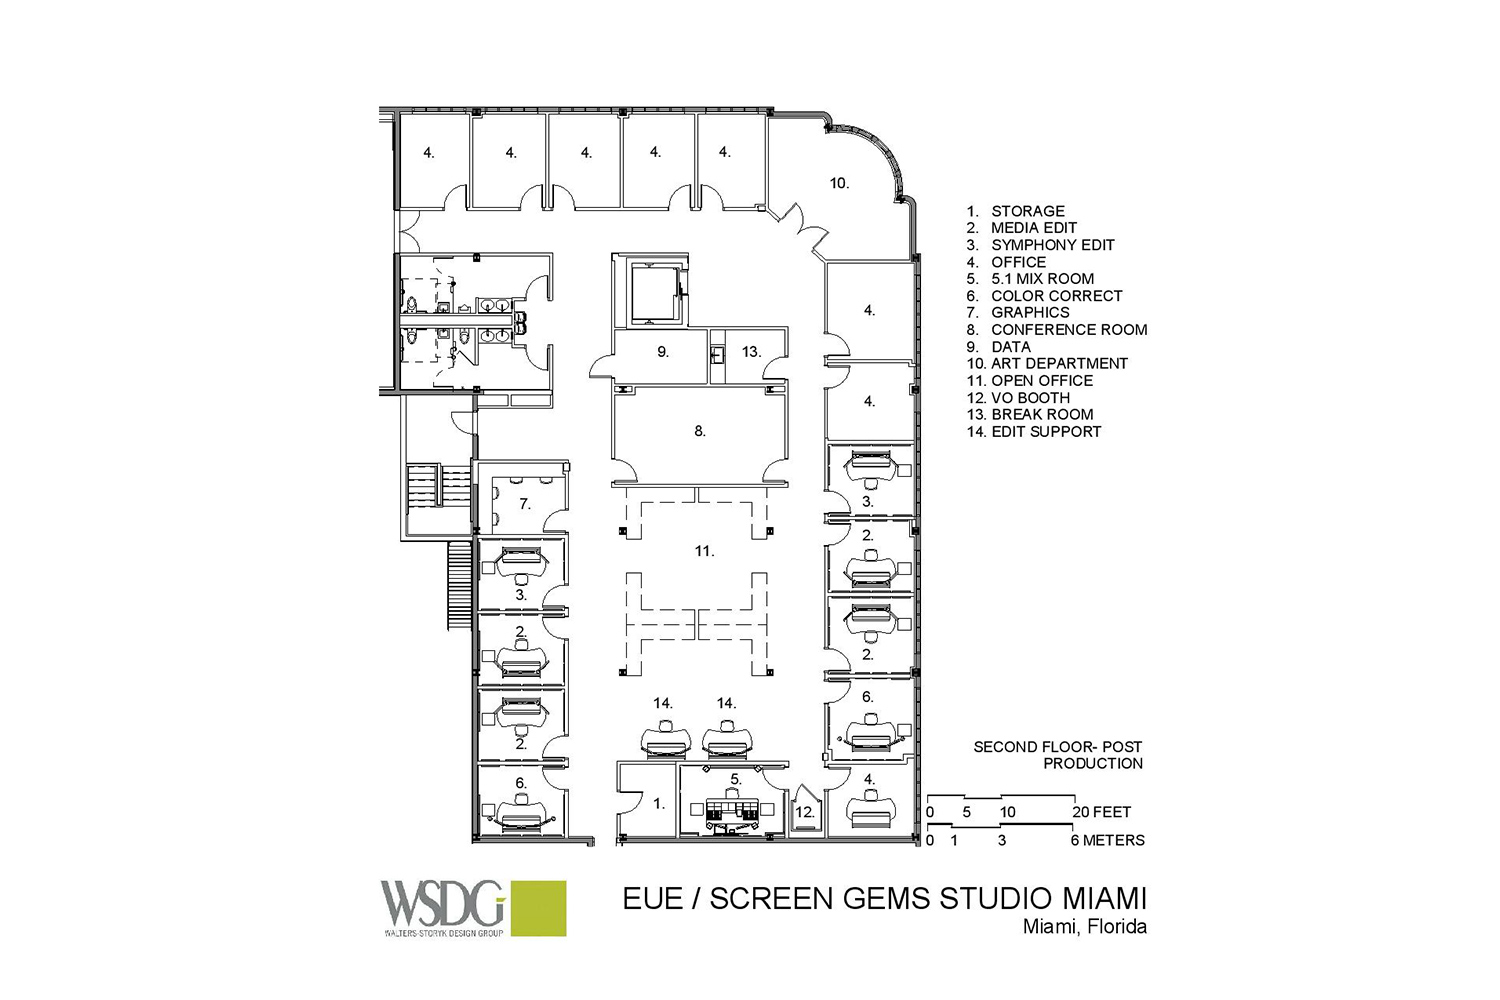 Viacom International/EUE/Screen Gems Studios recently completed construction on an 88,000 sq. ft. studio complex in Miami. WSDG was reached for an intensive feasibility study, cost/benefit analysis, and AV Systems Integration. Presentation Drawing 3.